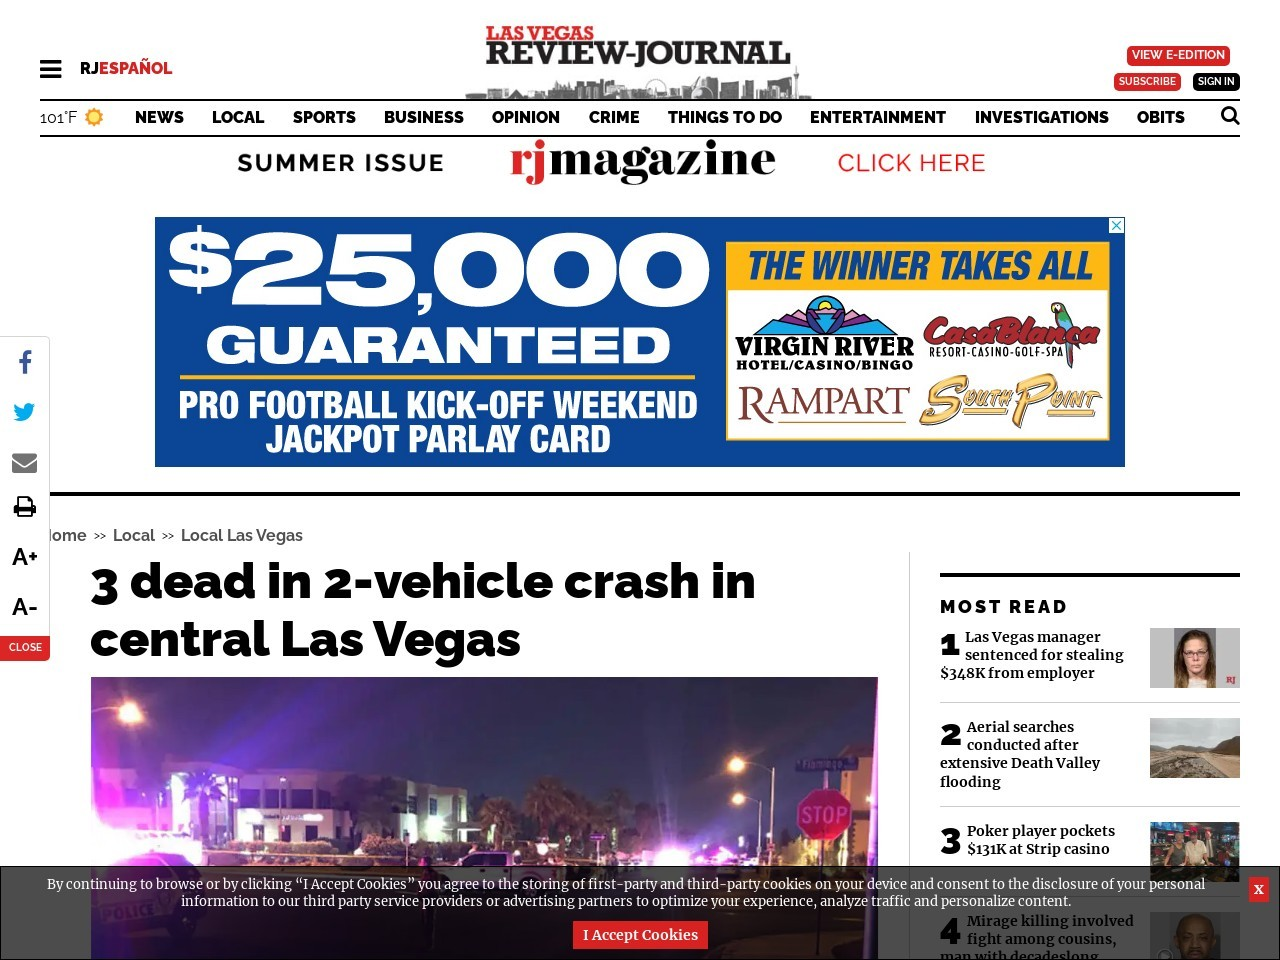 At least 2 dead in 2-vehicle crash in central Las Vegas